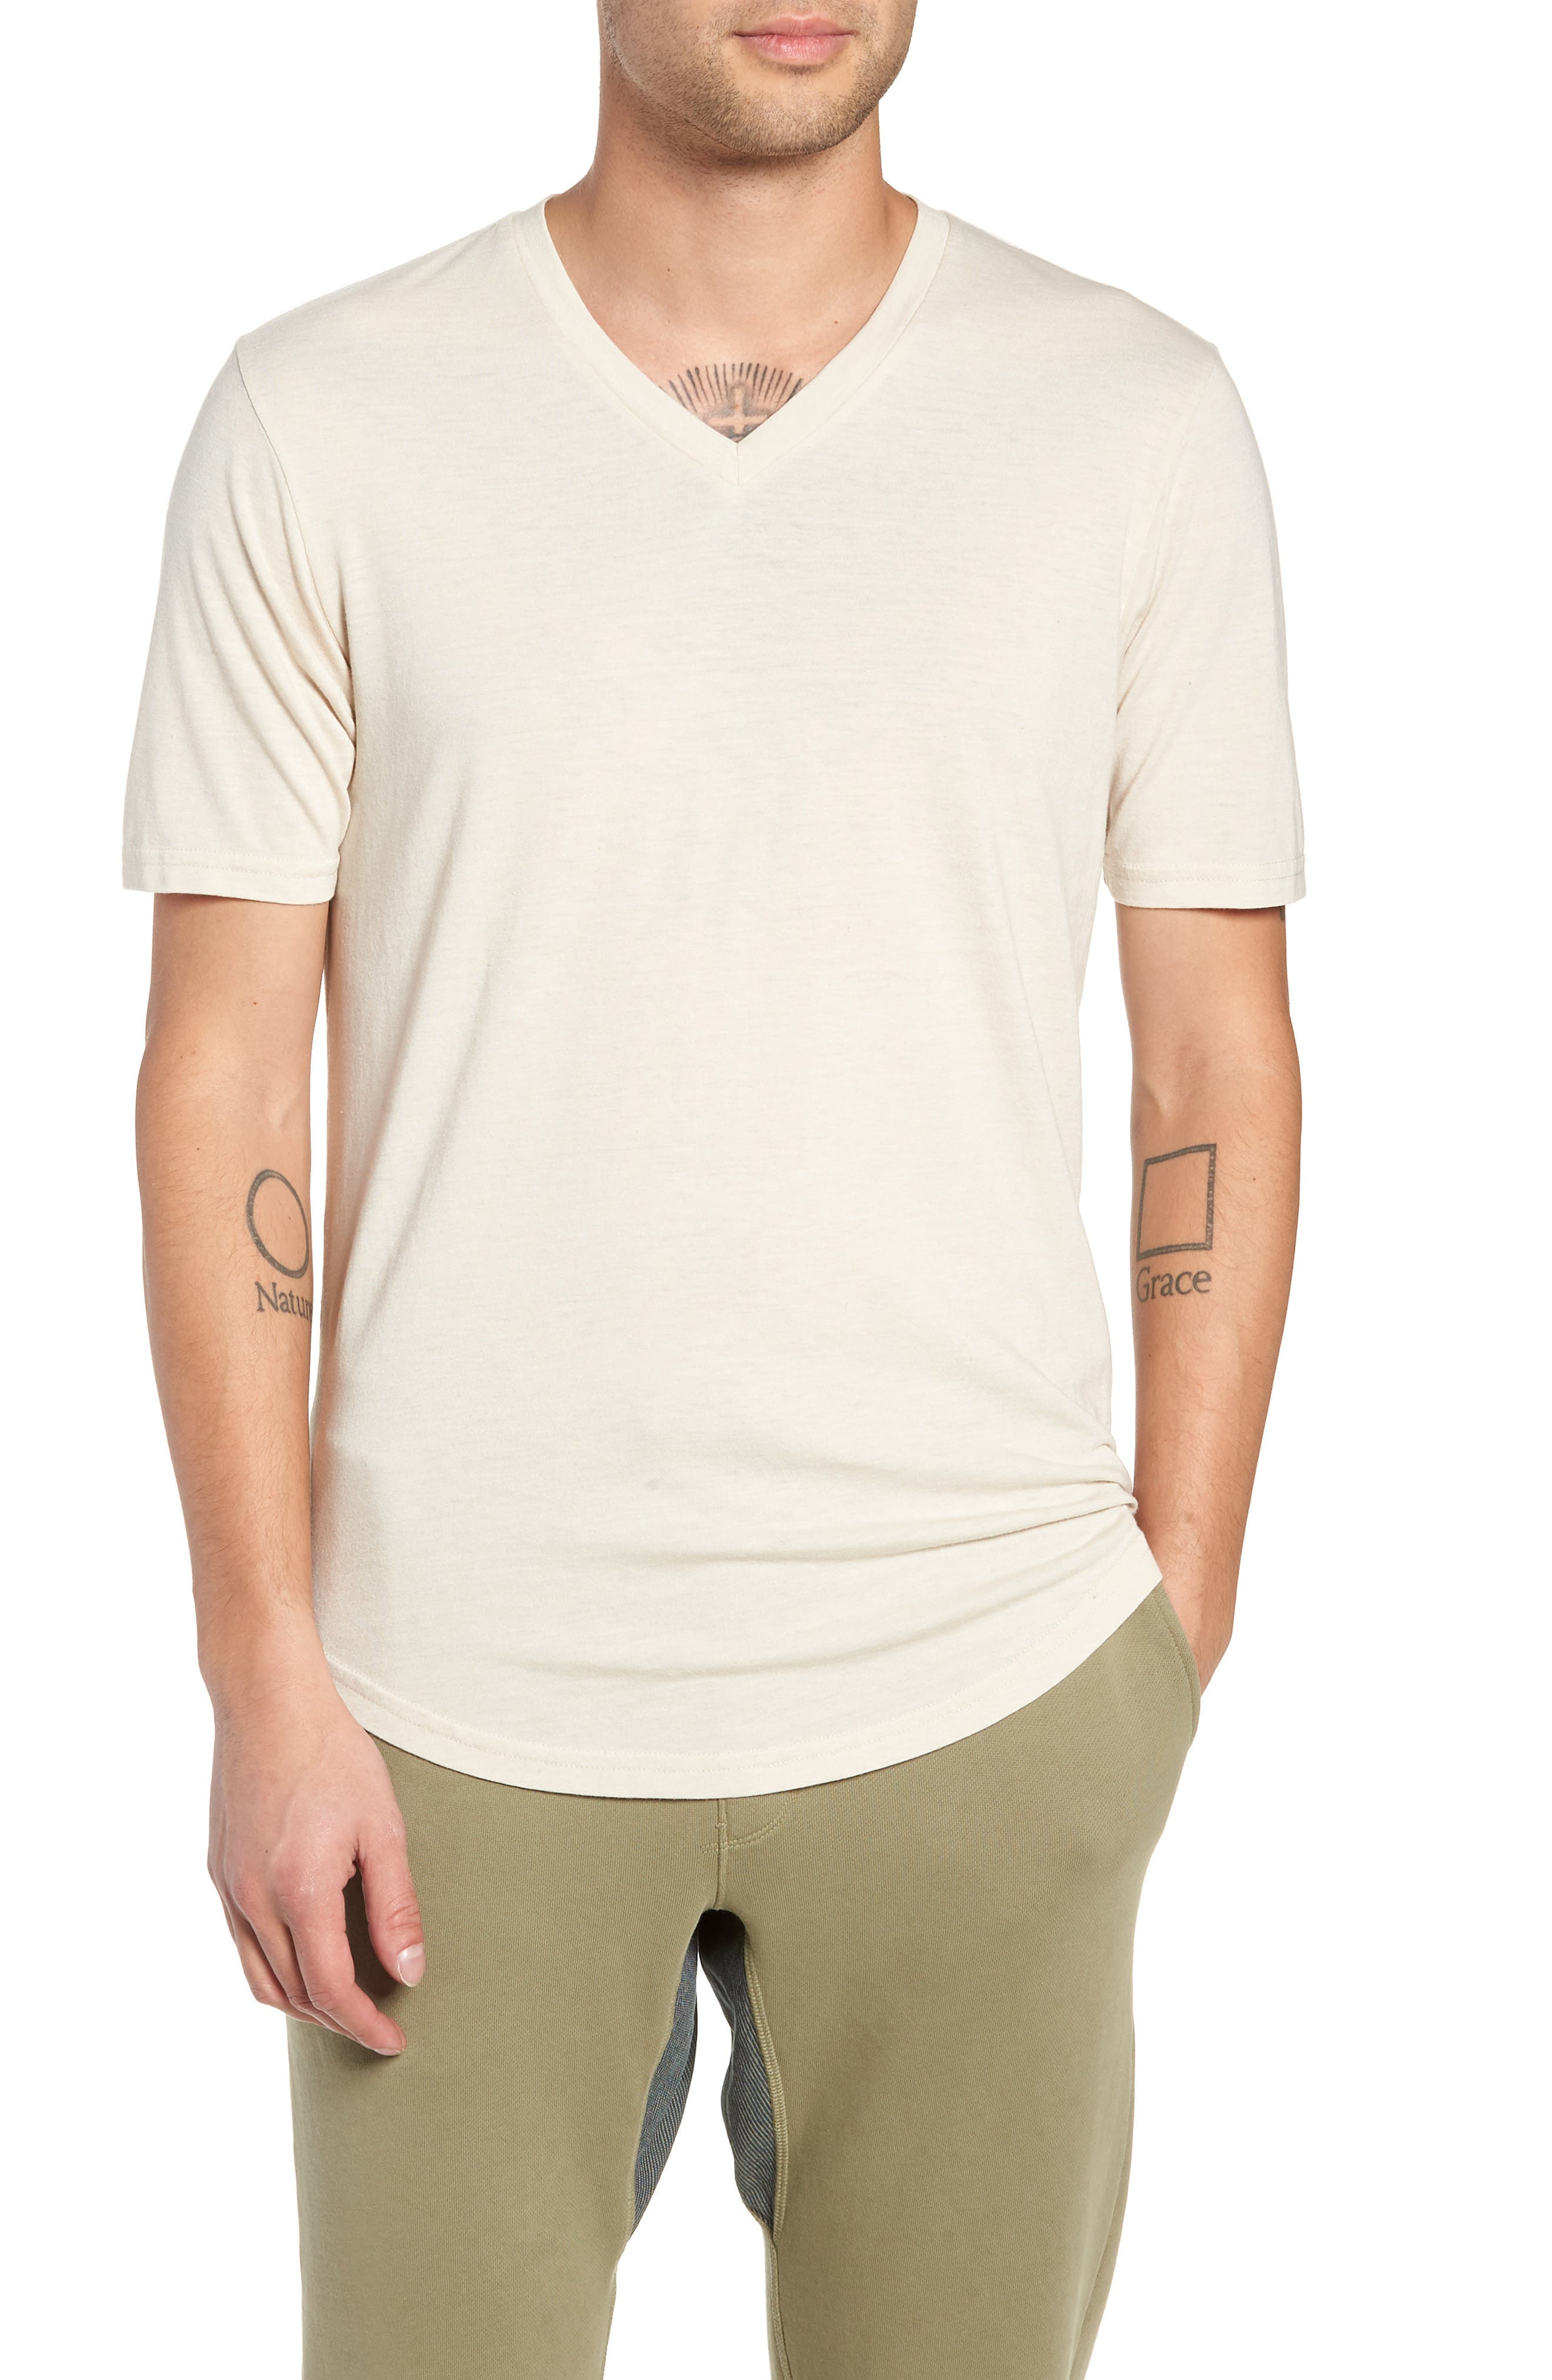 GOODLIFE Scallop Triblend V-Neck T-Shirt, Main, color, OYSTER